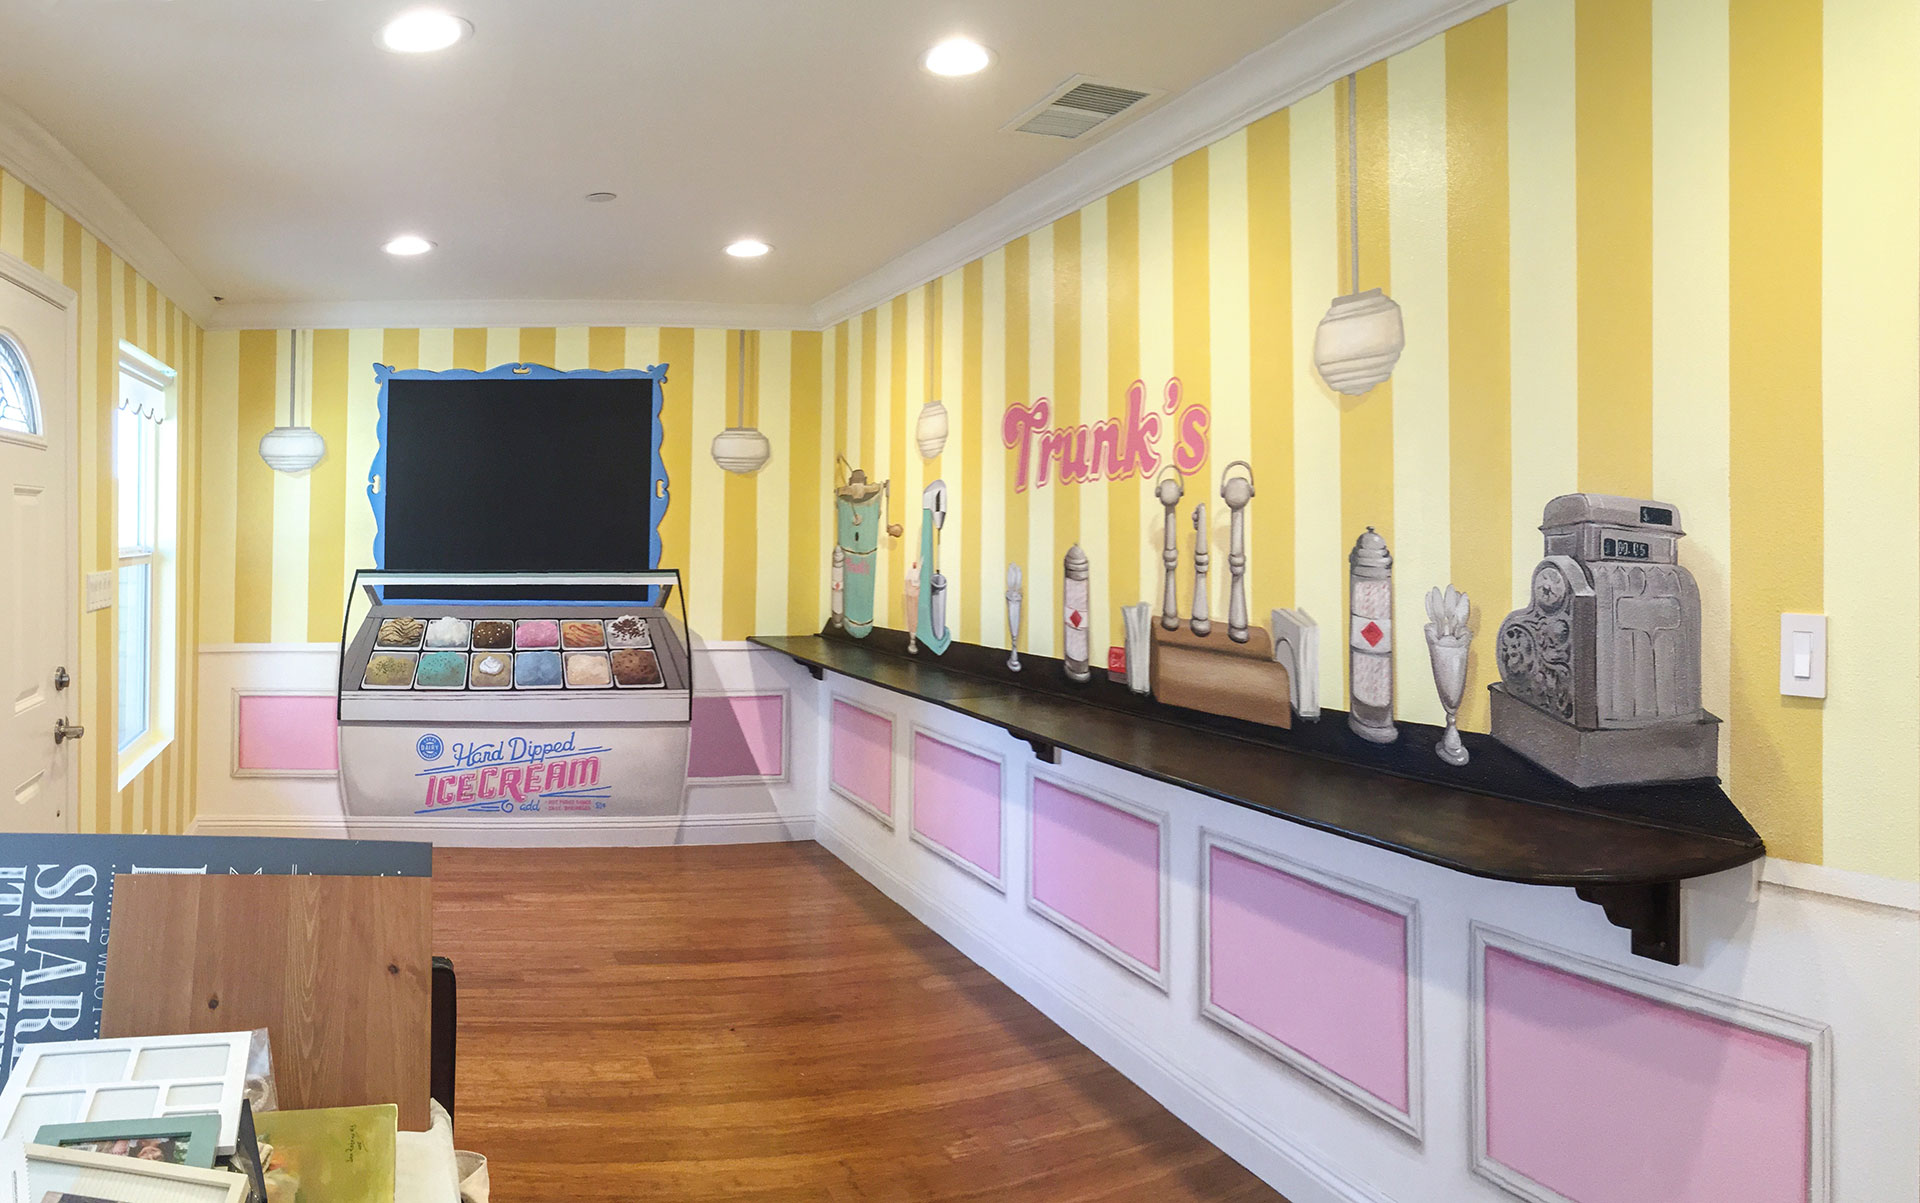 Trunk's Ice Cream Parlor